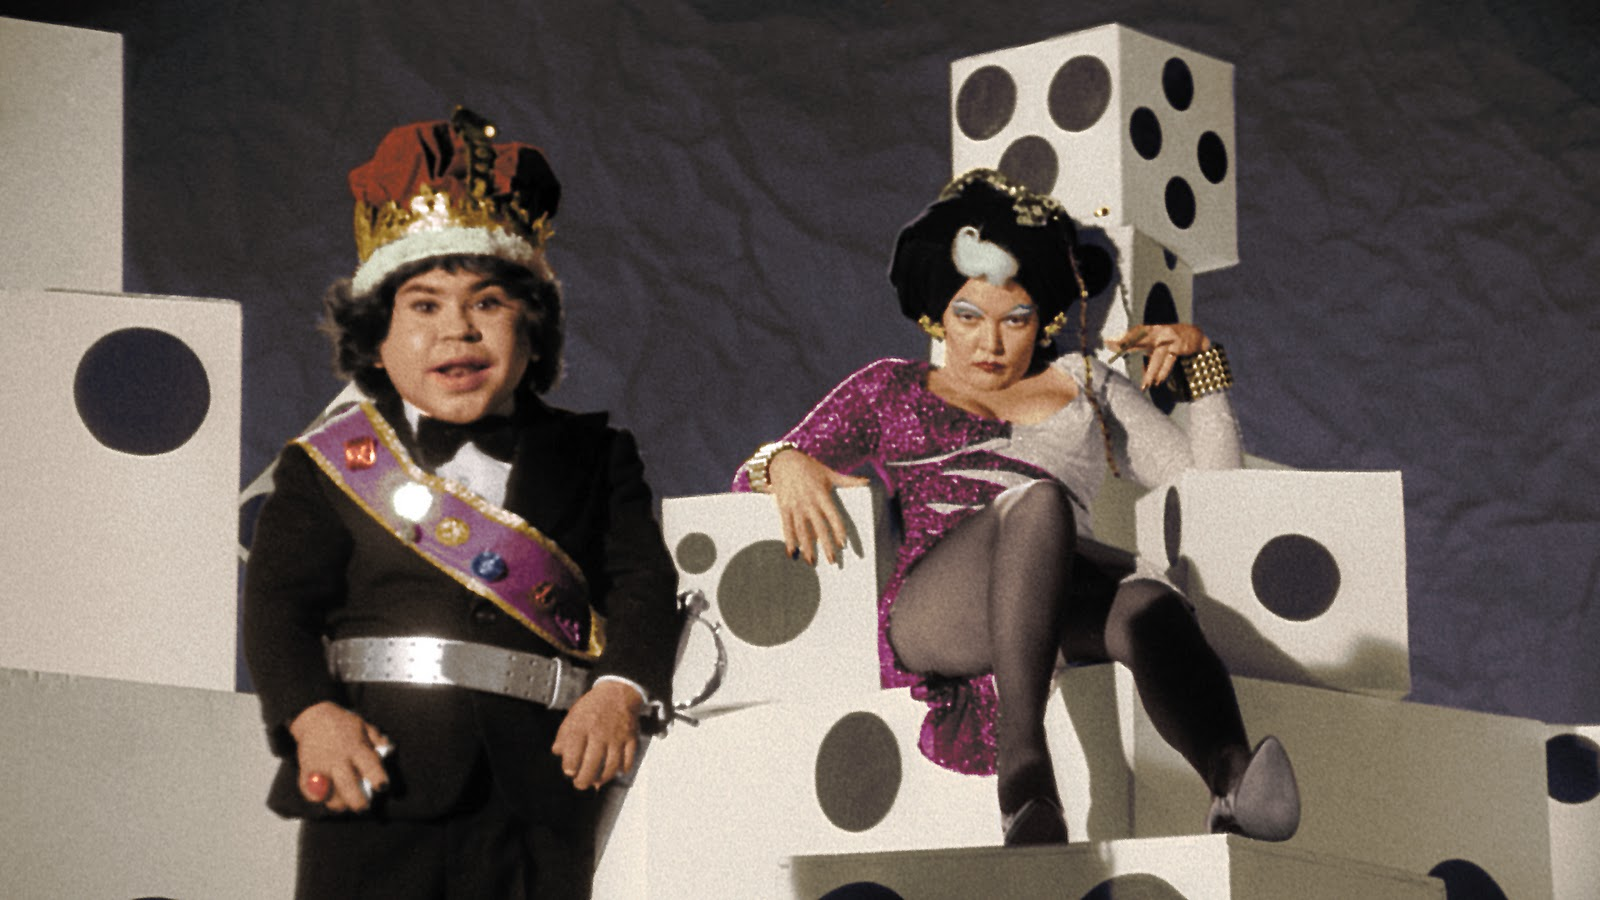 King Fausto (Herve Villechaize) and Queen Doris (Susan Tyrrell) in Forbidden Zone (1982)